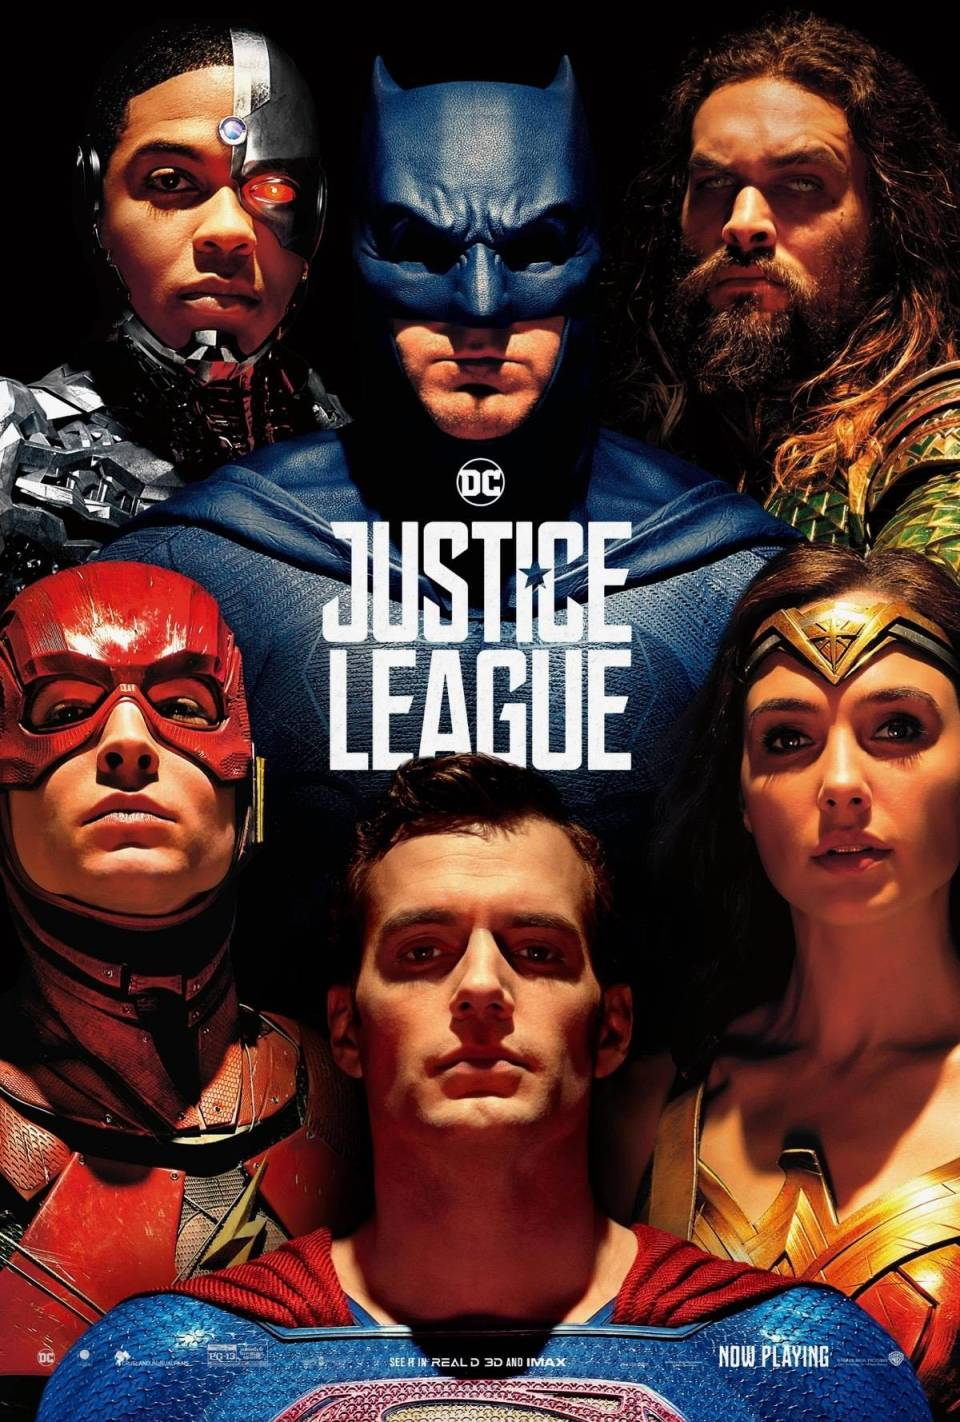 Justice League's New Poster Finally Adds Superman Into The Mix